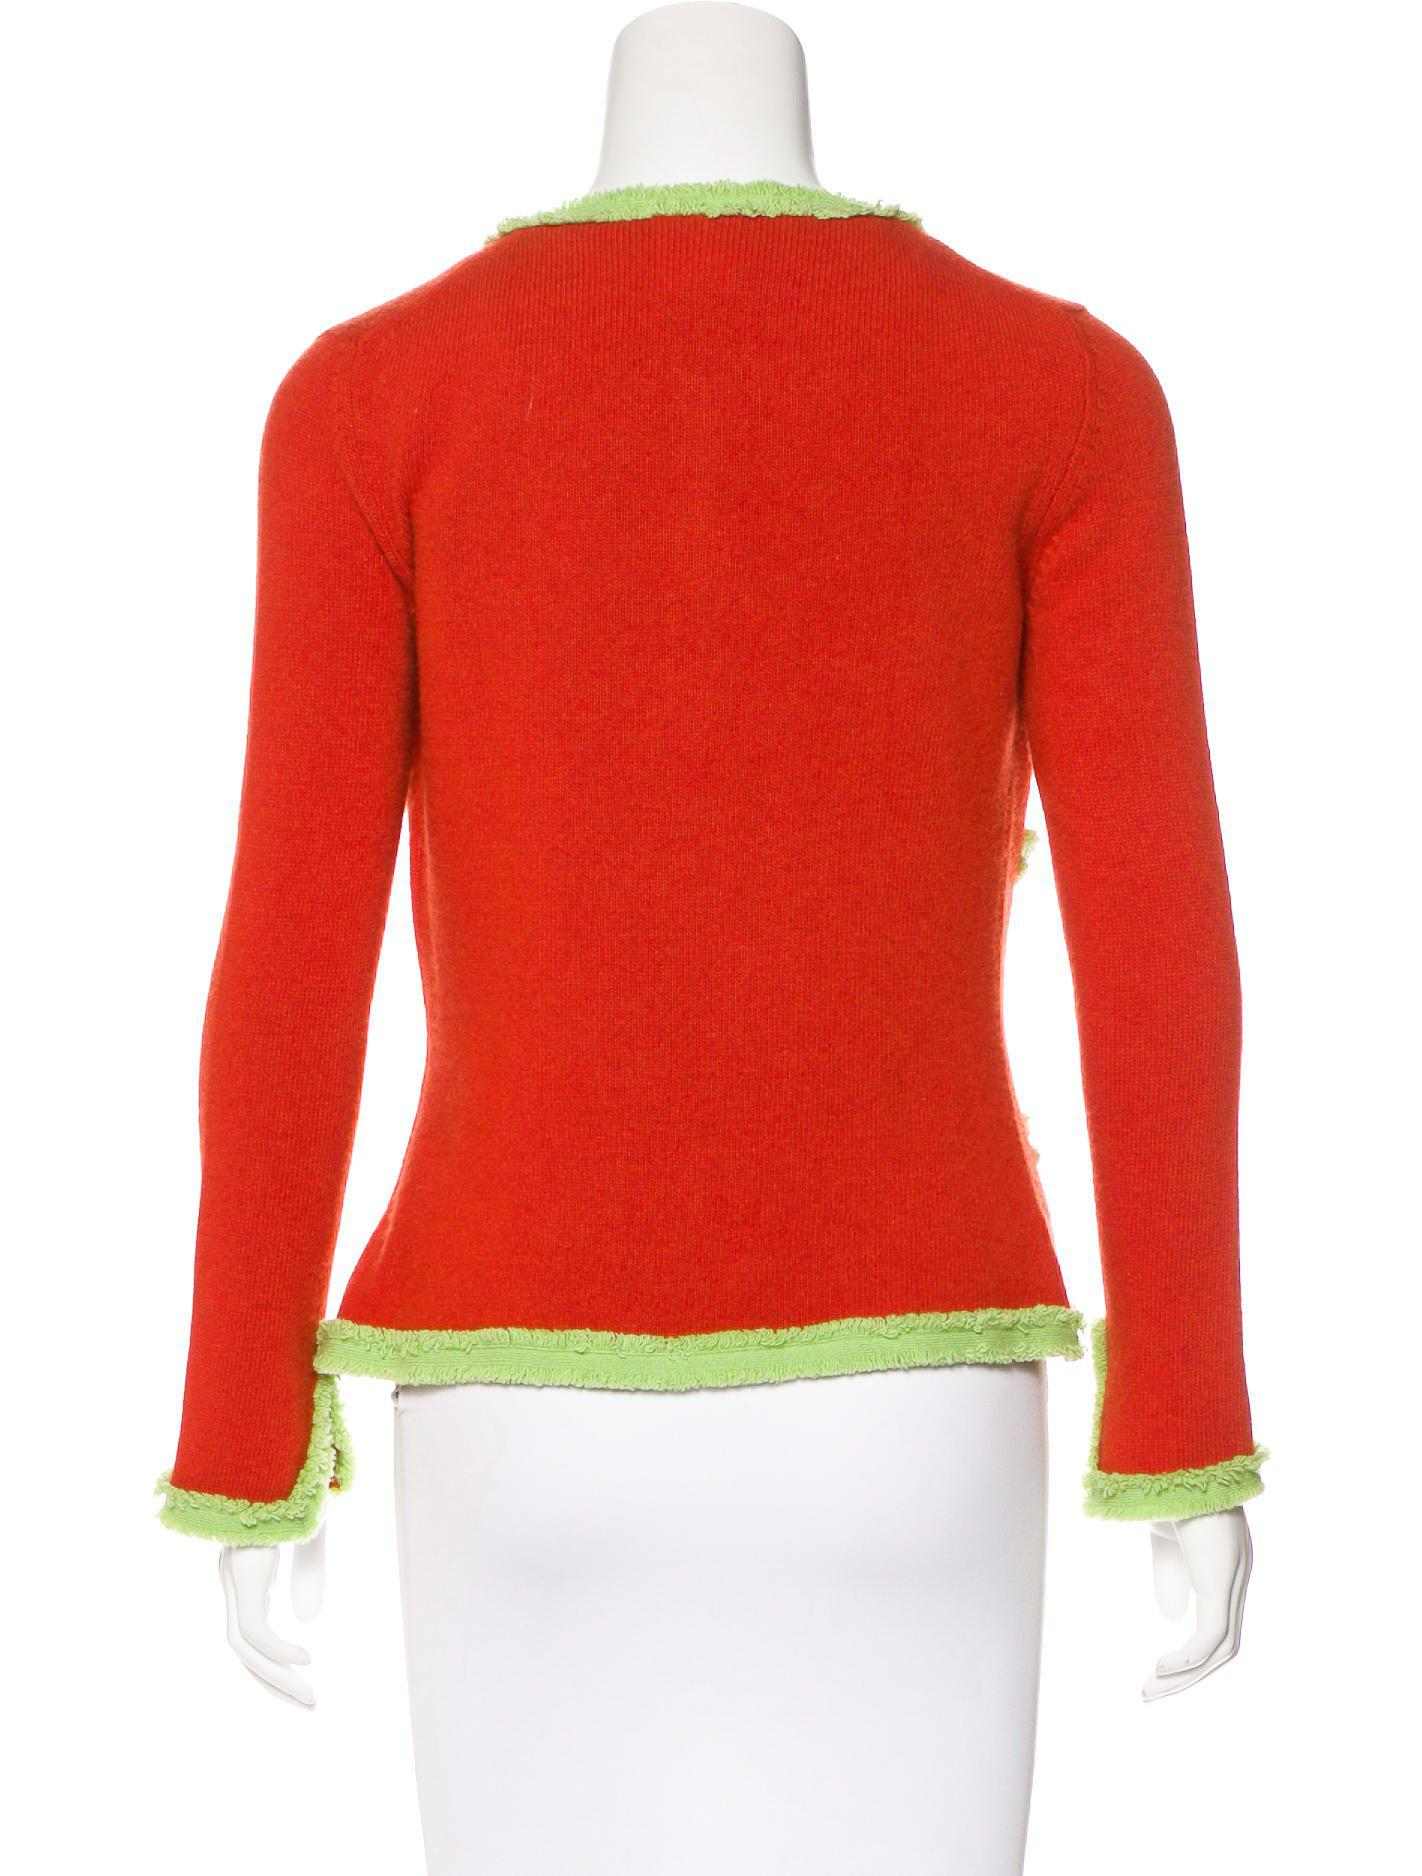 Chanel Cashmere Bicolor Cardigan Set Orange in Red | Lyst